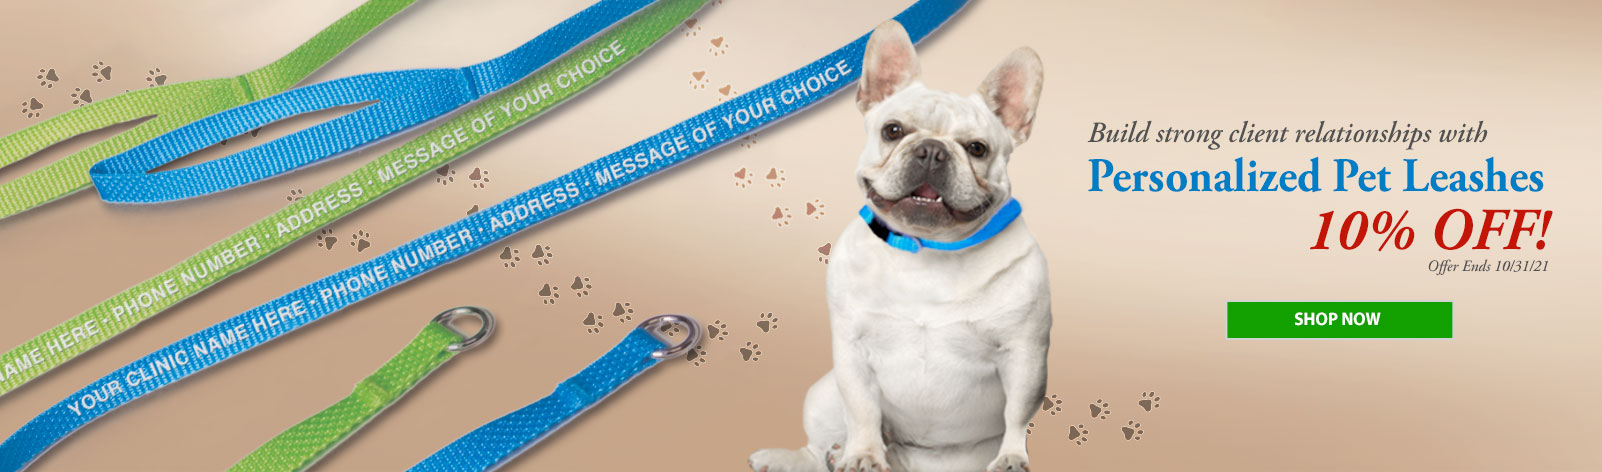 10% Off Personalized Pet Leashes!